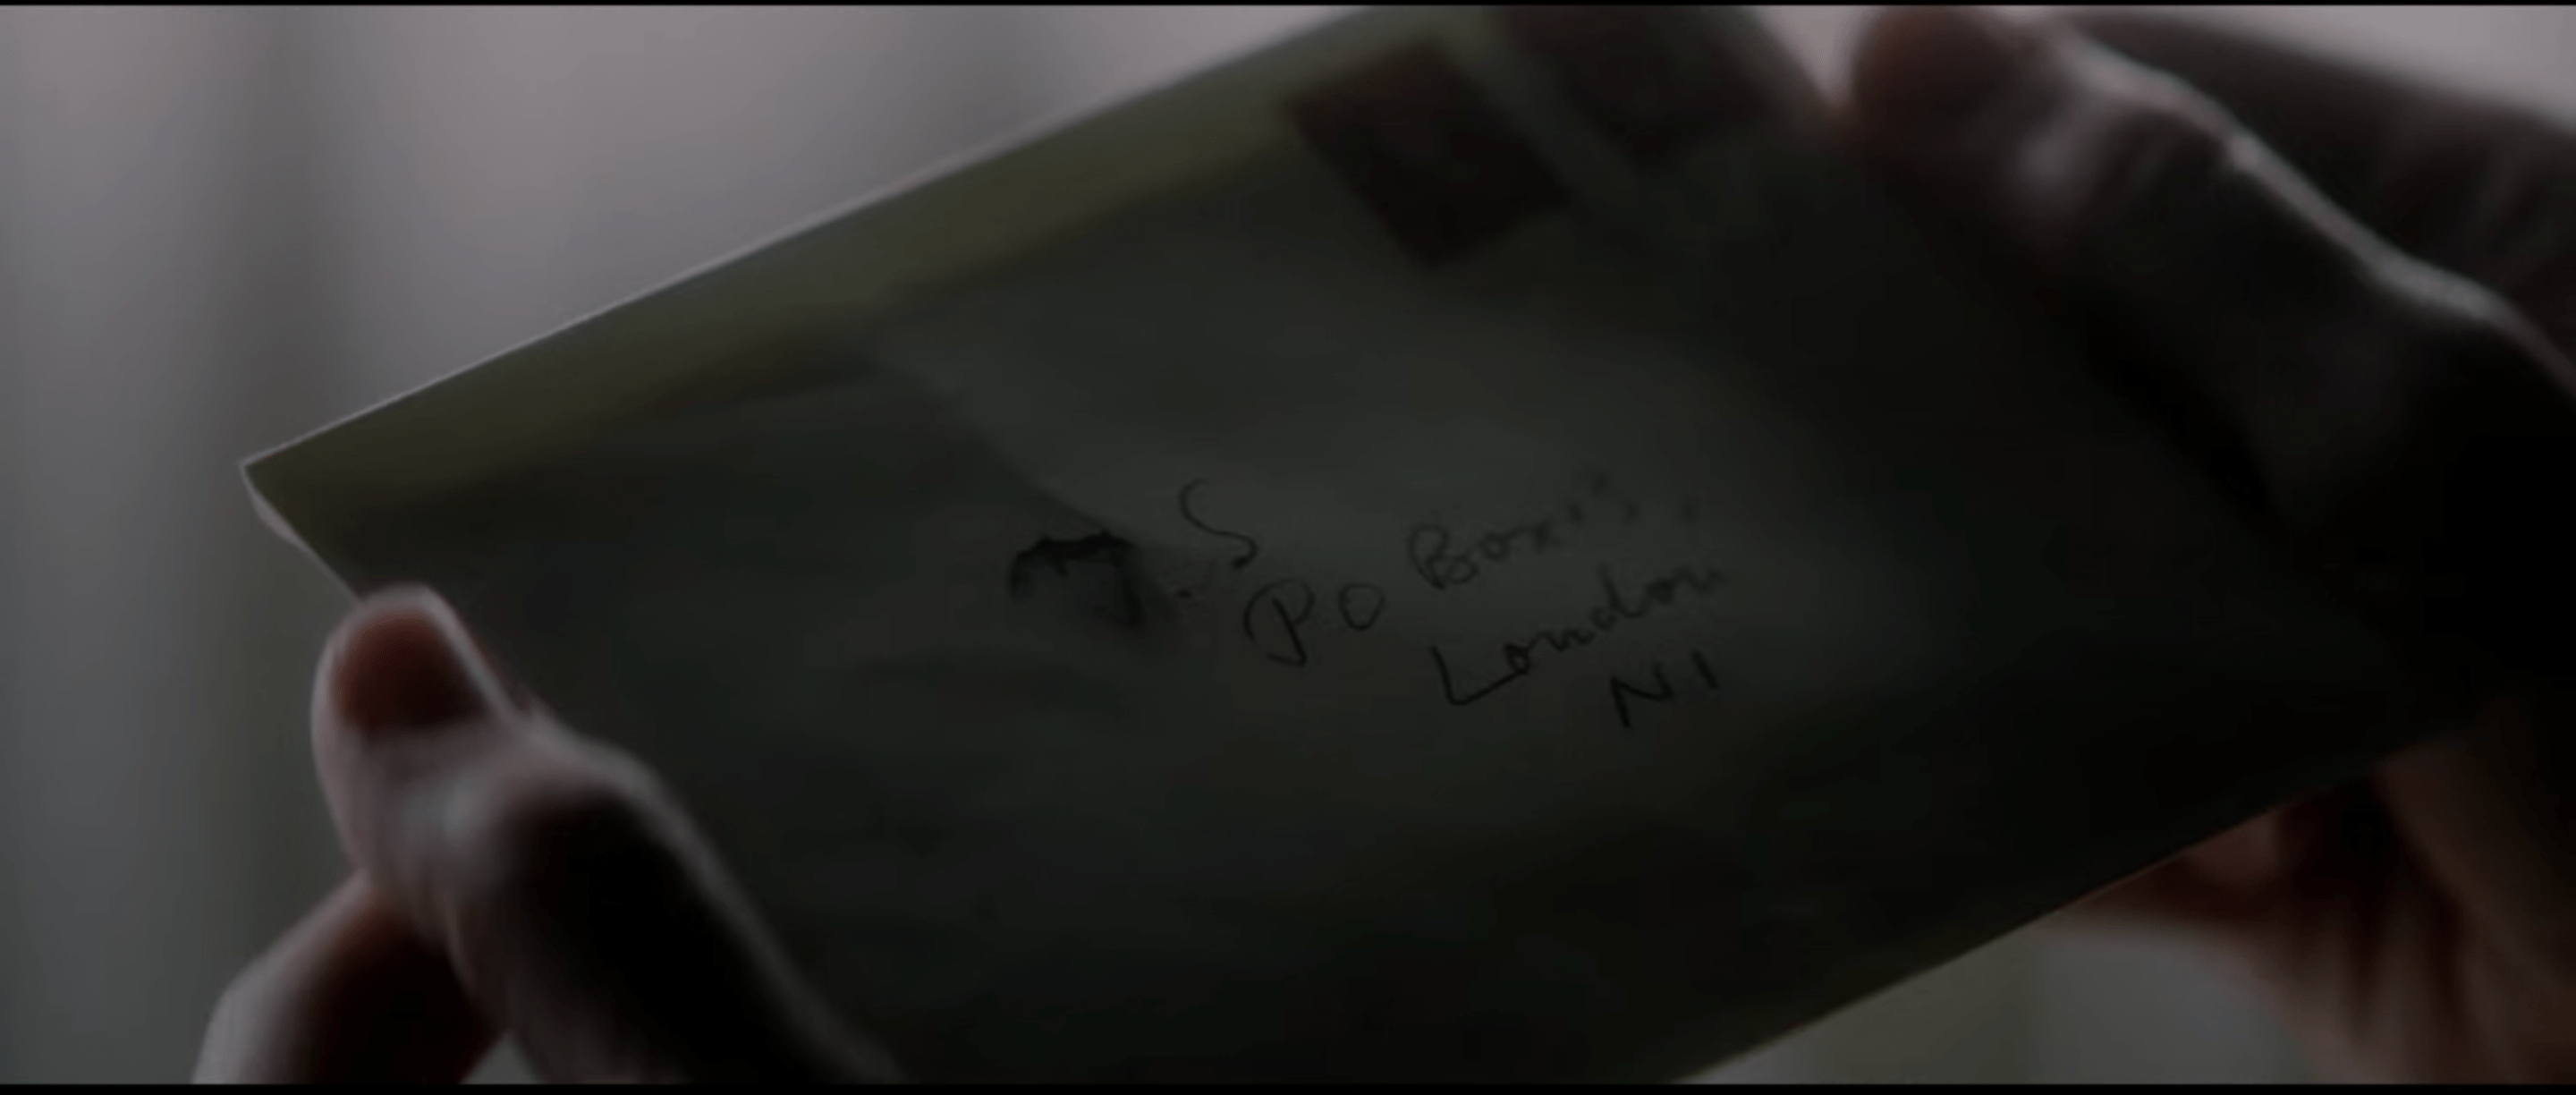 Lawrence's hands holding a letter addressed to J.S. at a P.O. Box address in London. the J is very smeared.